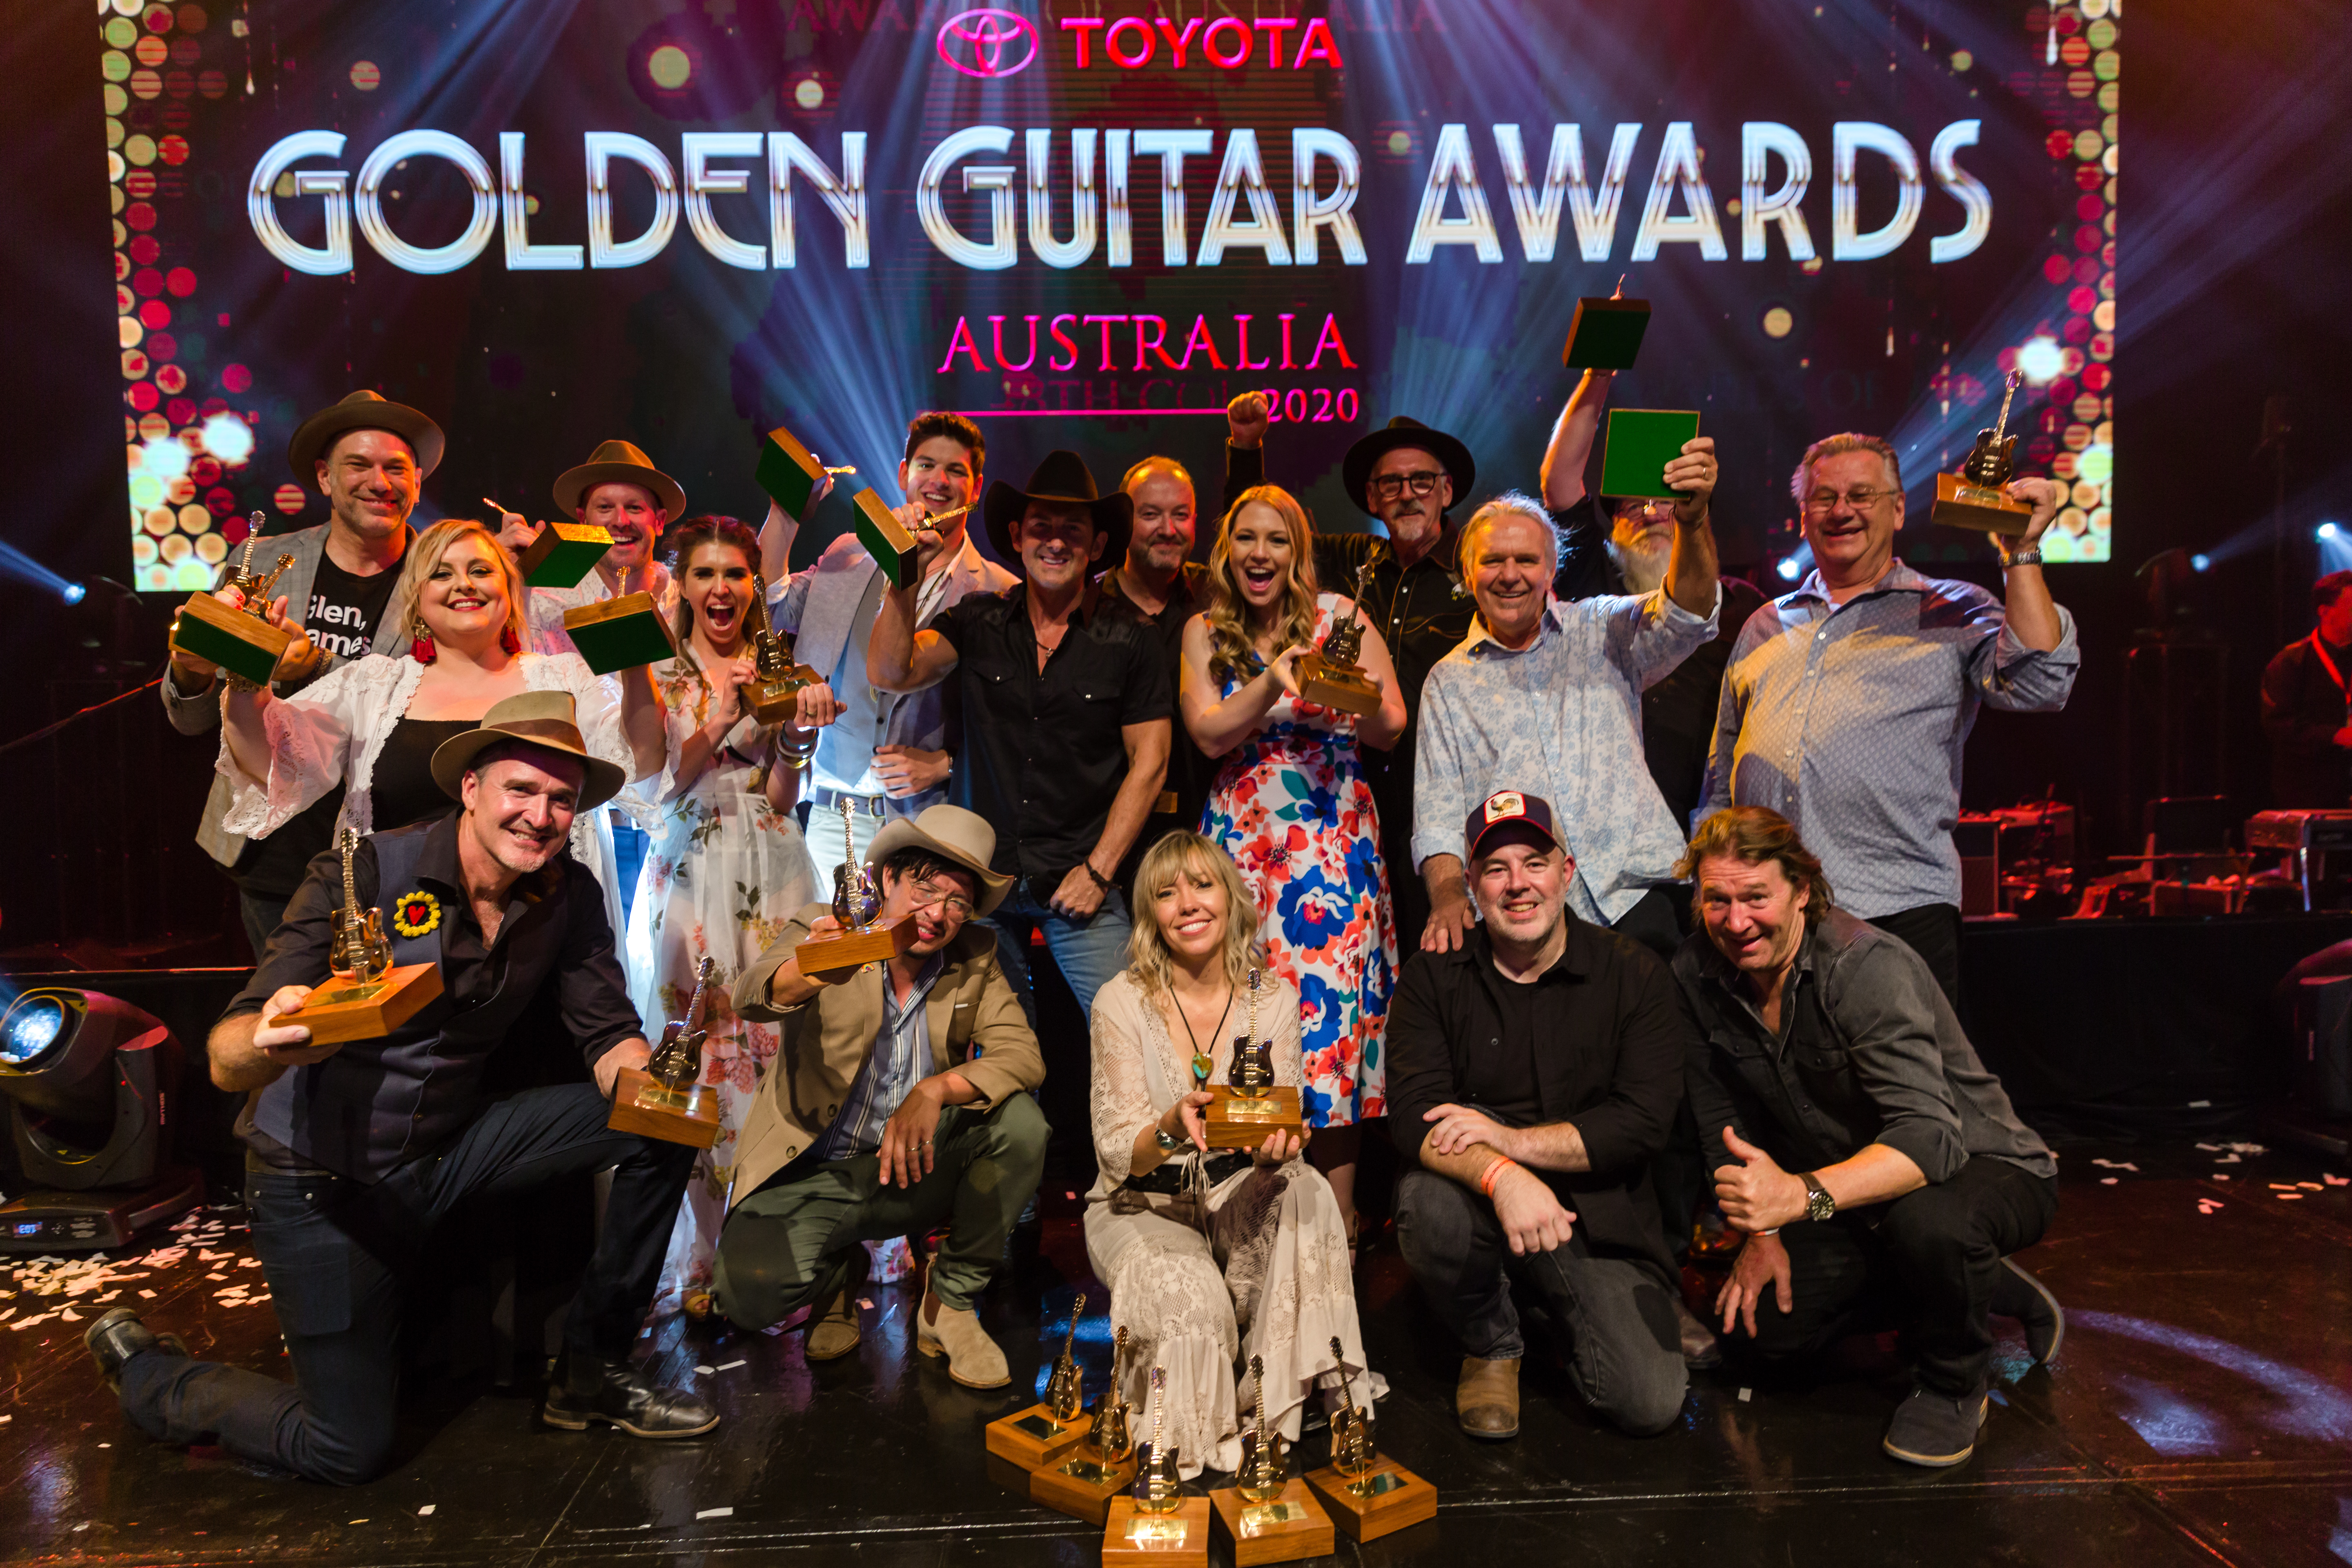 Felicity Urquhart, Blake O'Connor & More Score Golden Guitar Awards